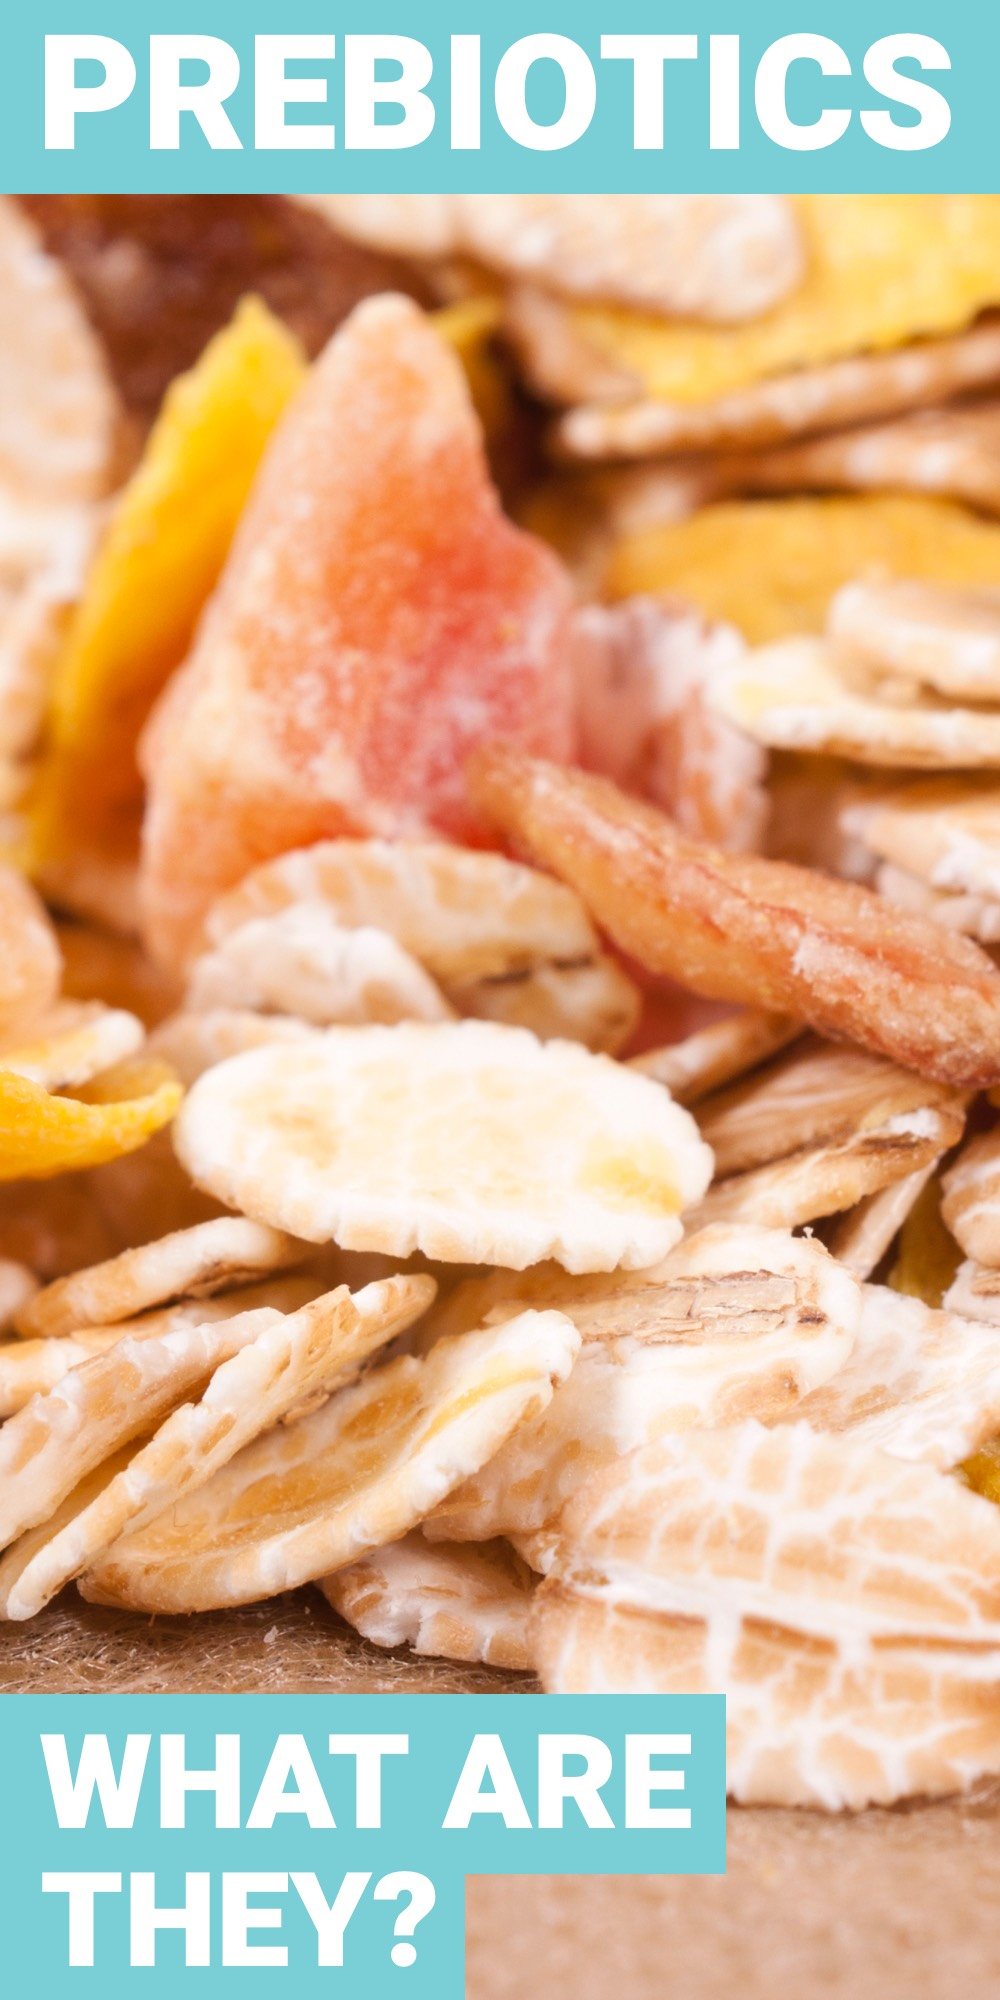 Prebiotics work in a way that greatly help your probiotics. But what are Prebiotics?